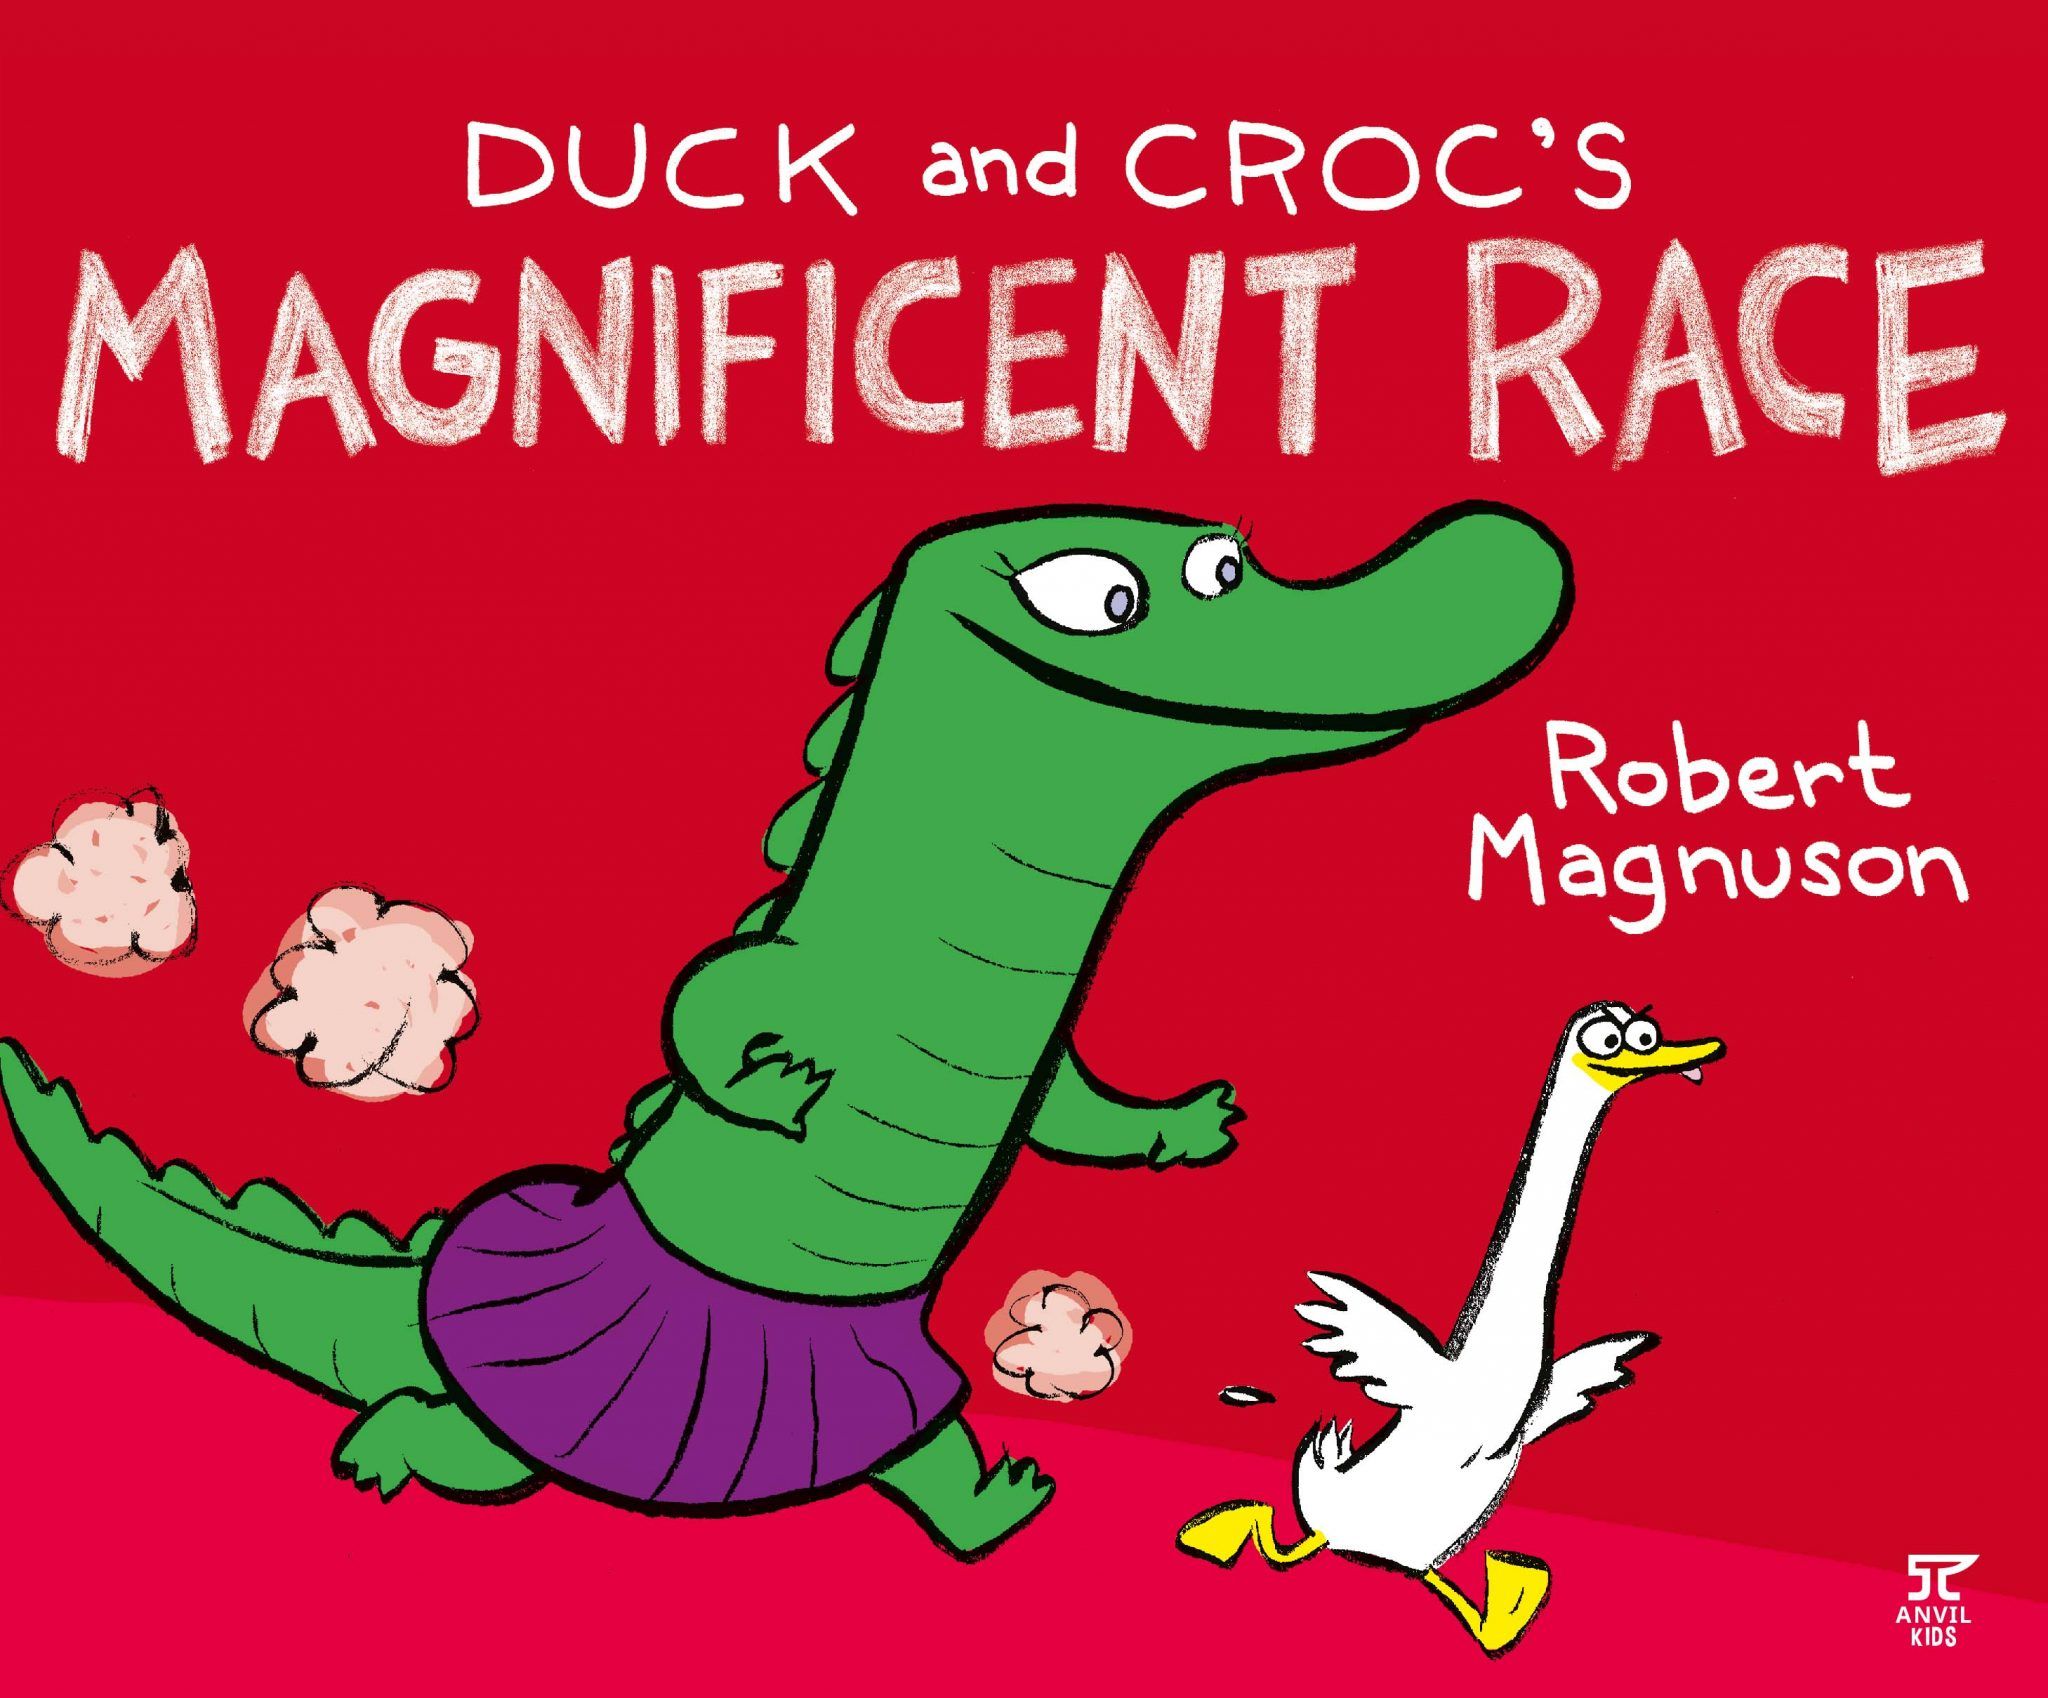 Duck and Croc's Magnificent Race